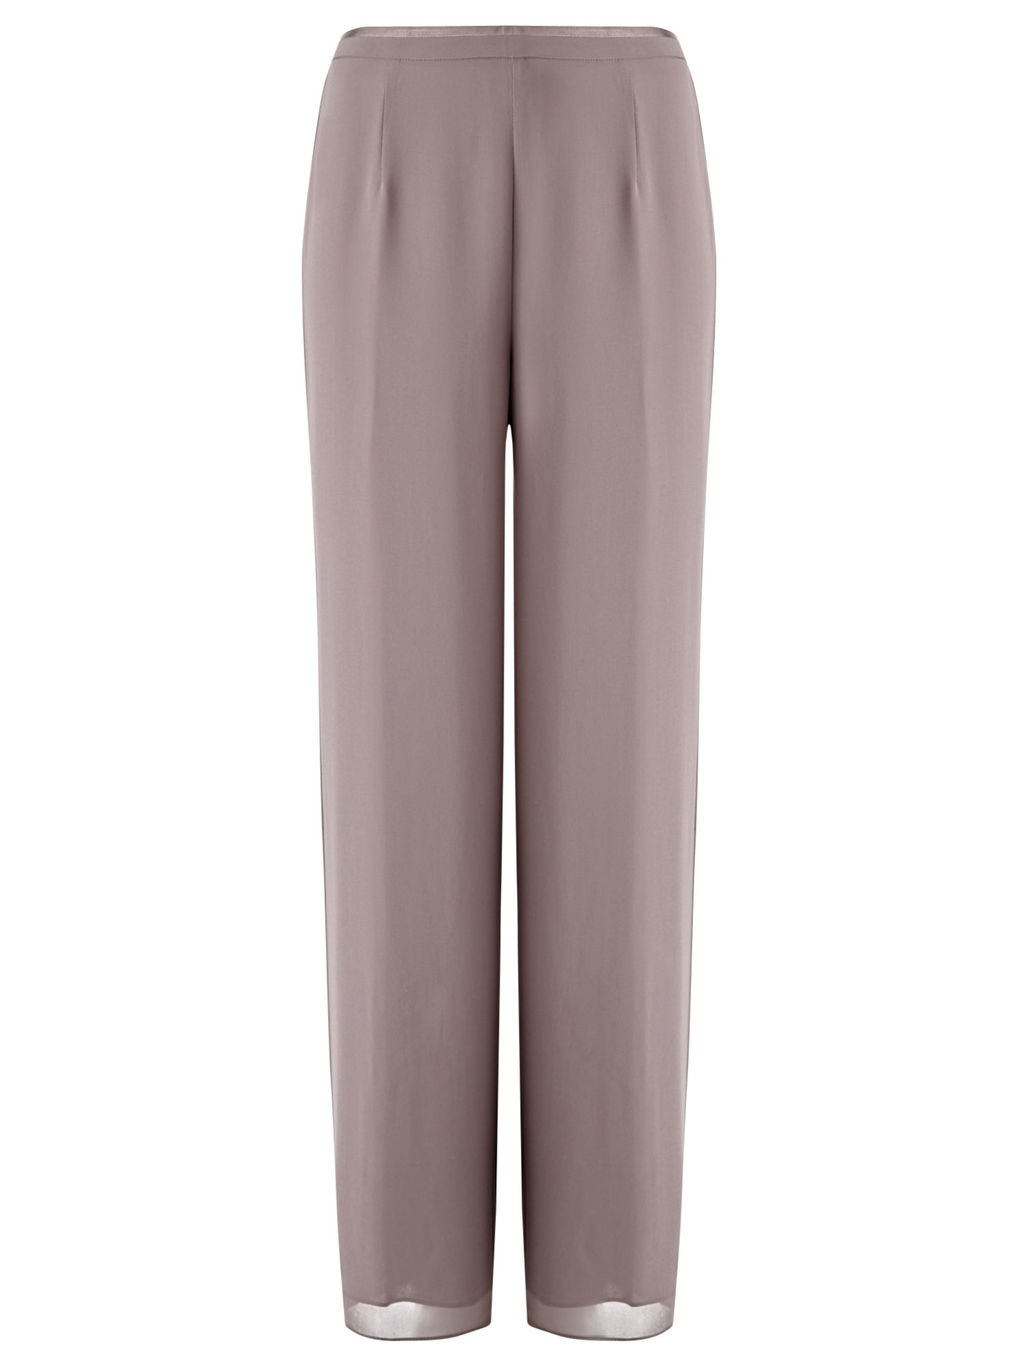 Grosgrain Trouser - length: standard; pattern: plain; waist: mid/regular rise; predominant colour: taupe; fibres: polyester/polyamide - 100%; occasions: occasion; texture group: sheer fabrics/chiffon/organza etc.; fit: wide leg; pattern type: fabric; style: standard; season: s/s 2016